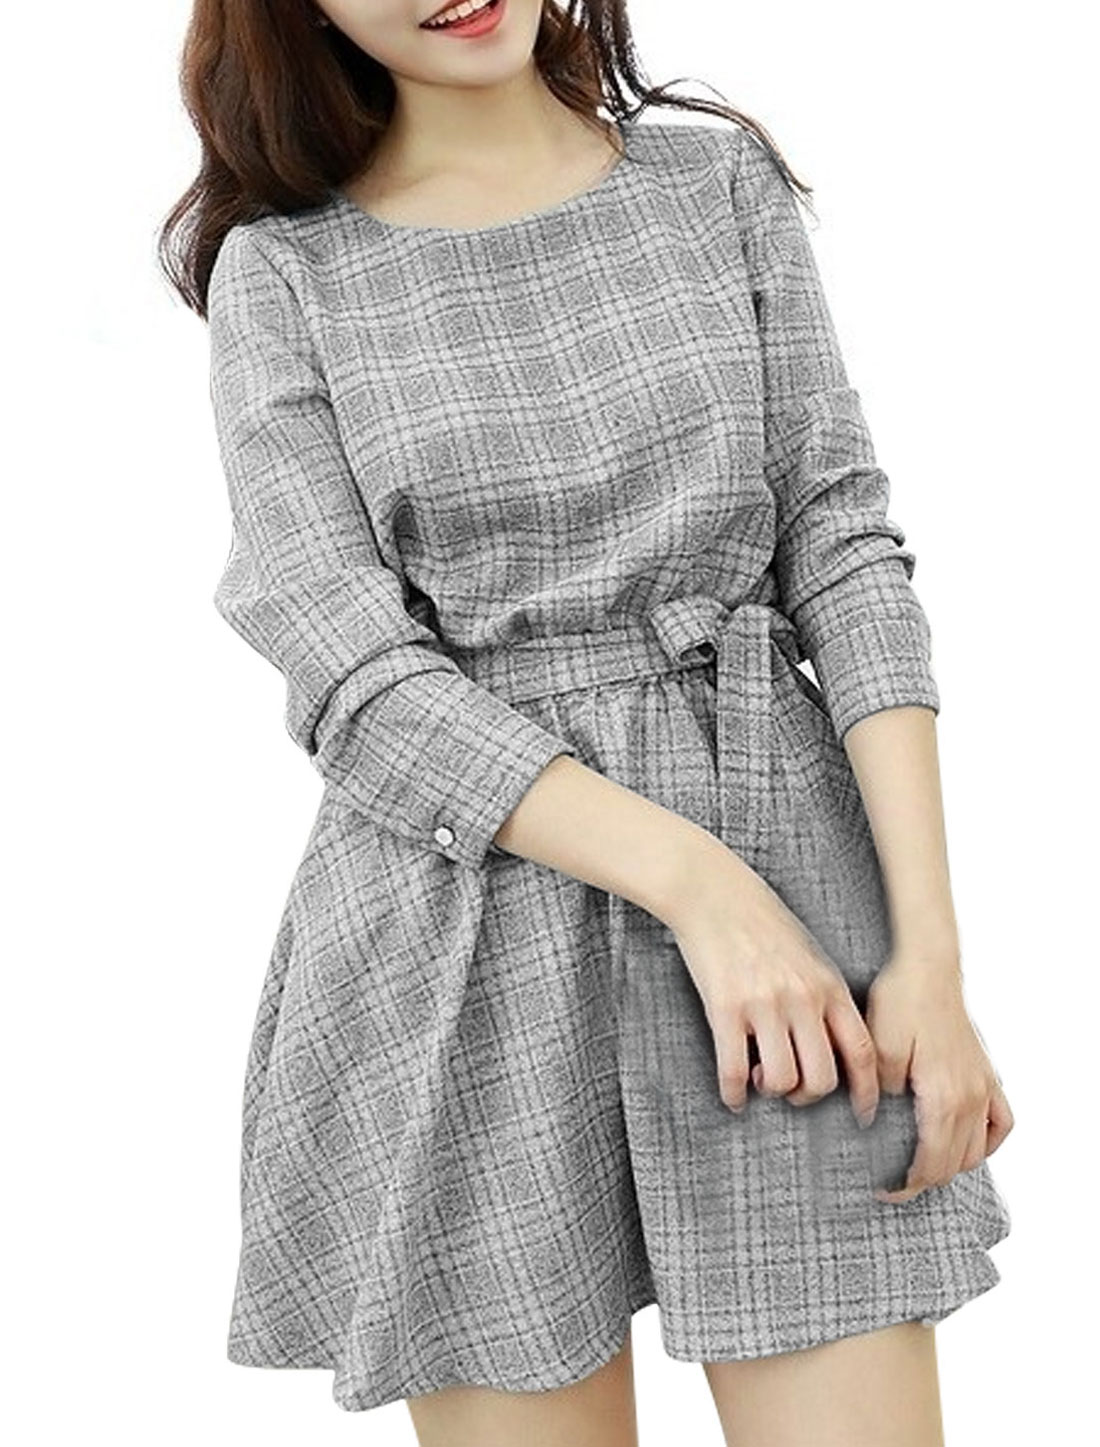 Ladies Light Gray Slipover Plaids Elastic Waist Button Cuffs Dress w Strap M